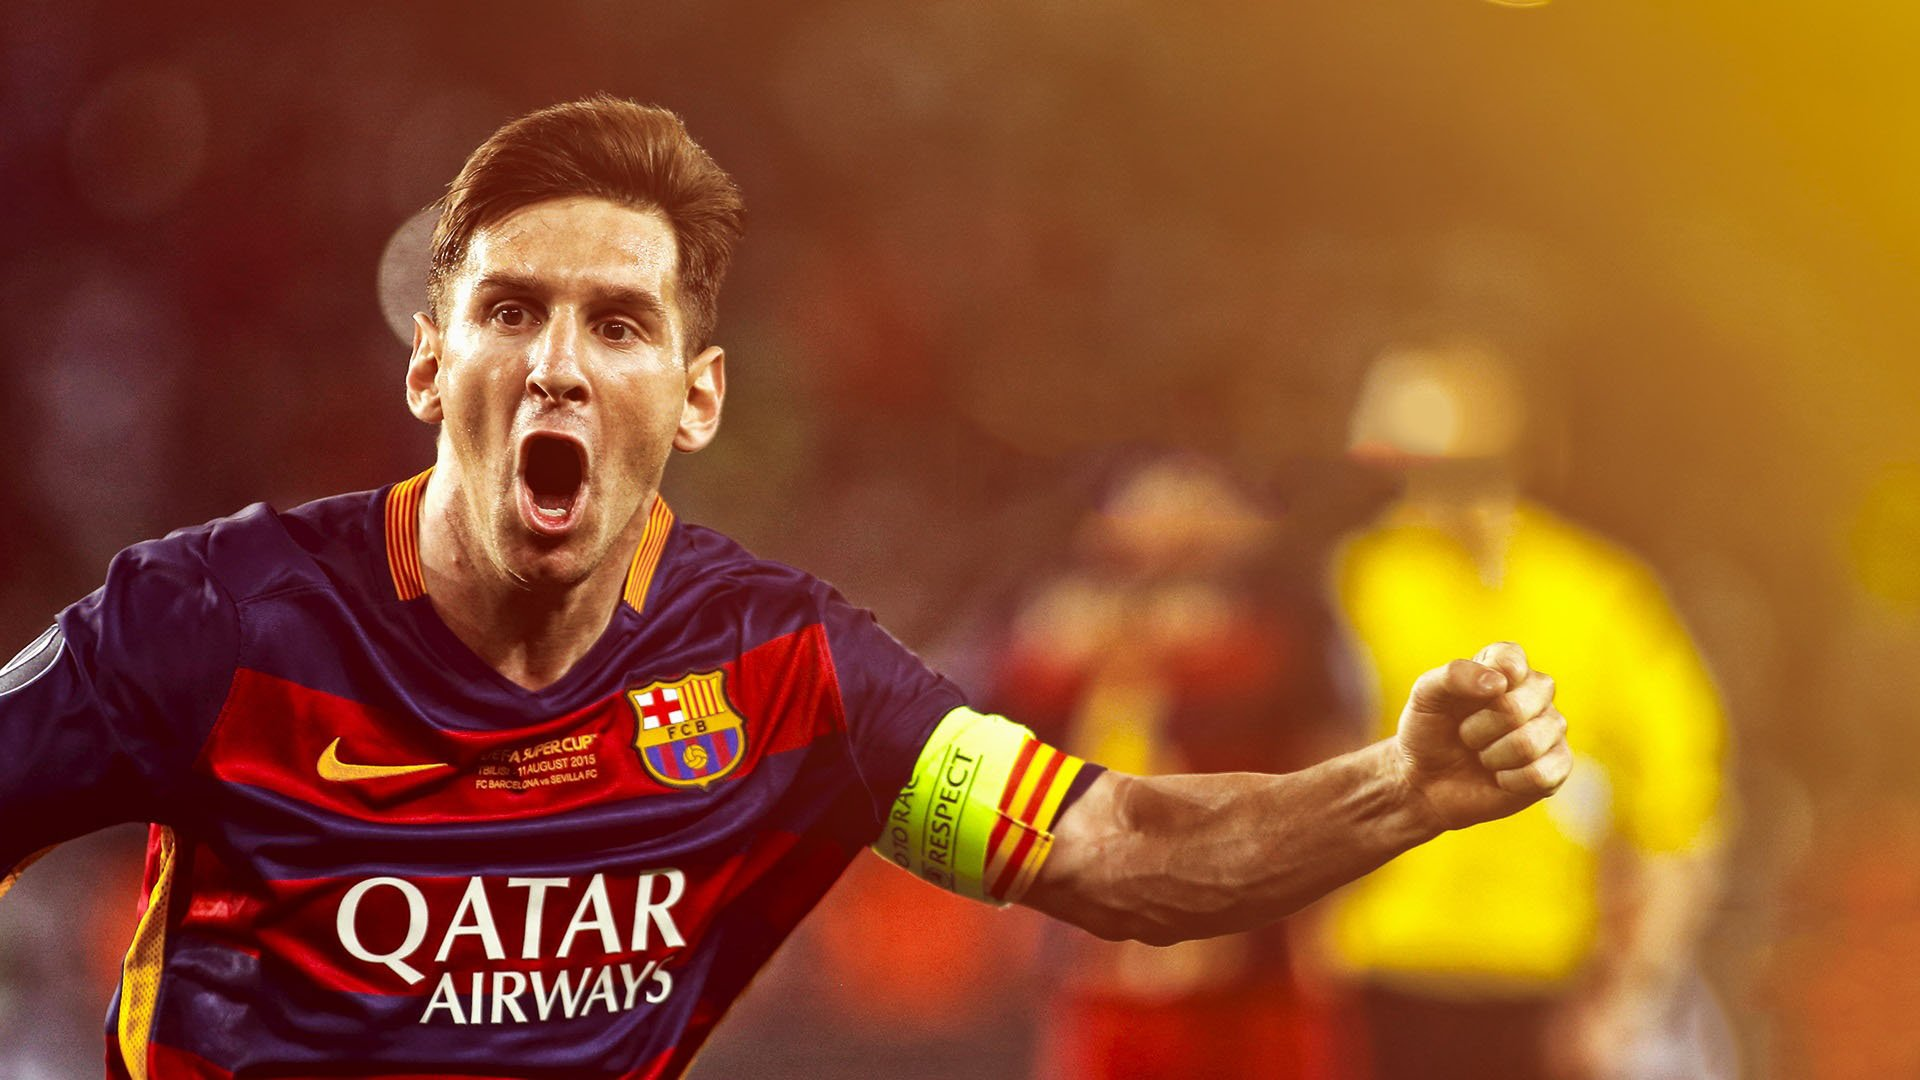 vipmaxbet-lionel-messi-wallpaper-1